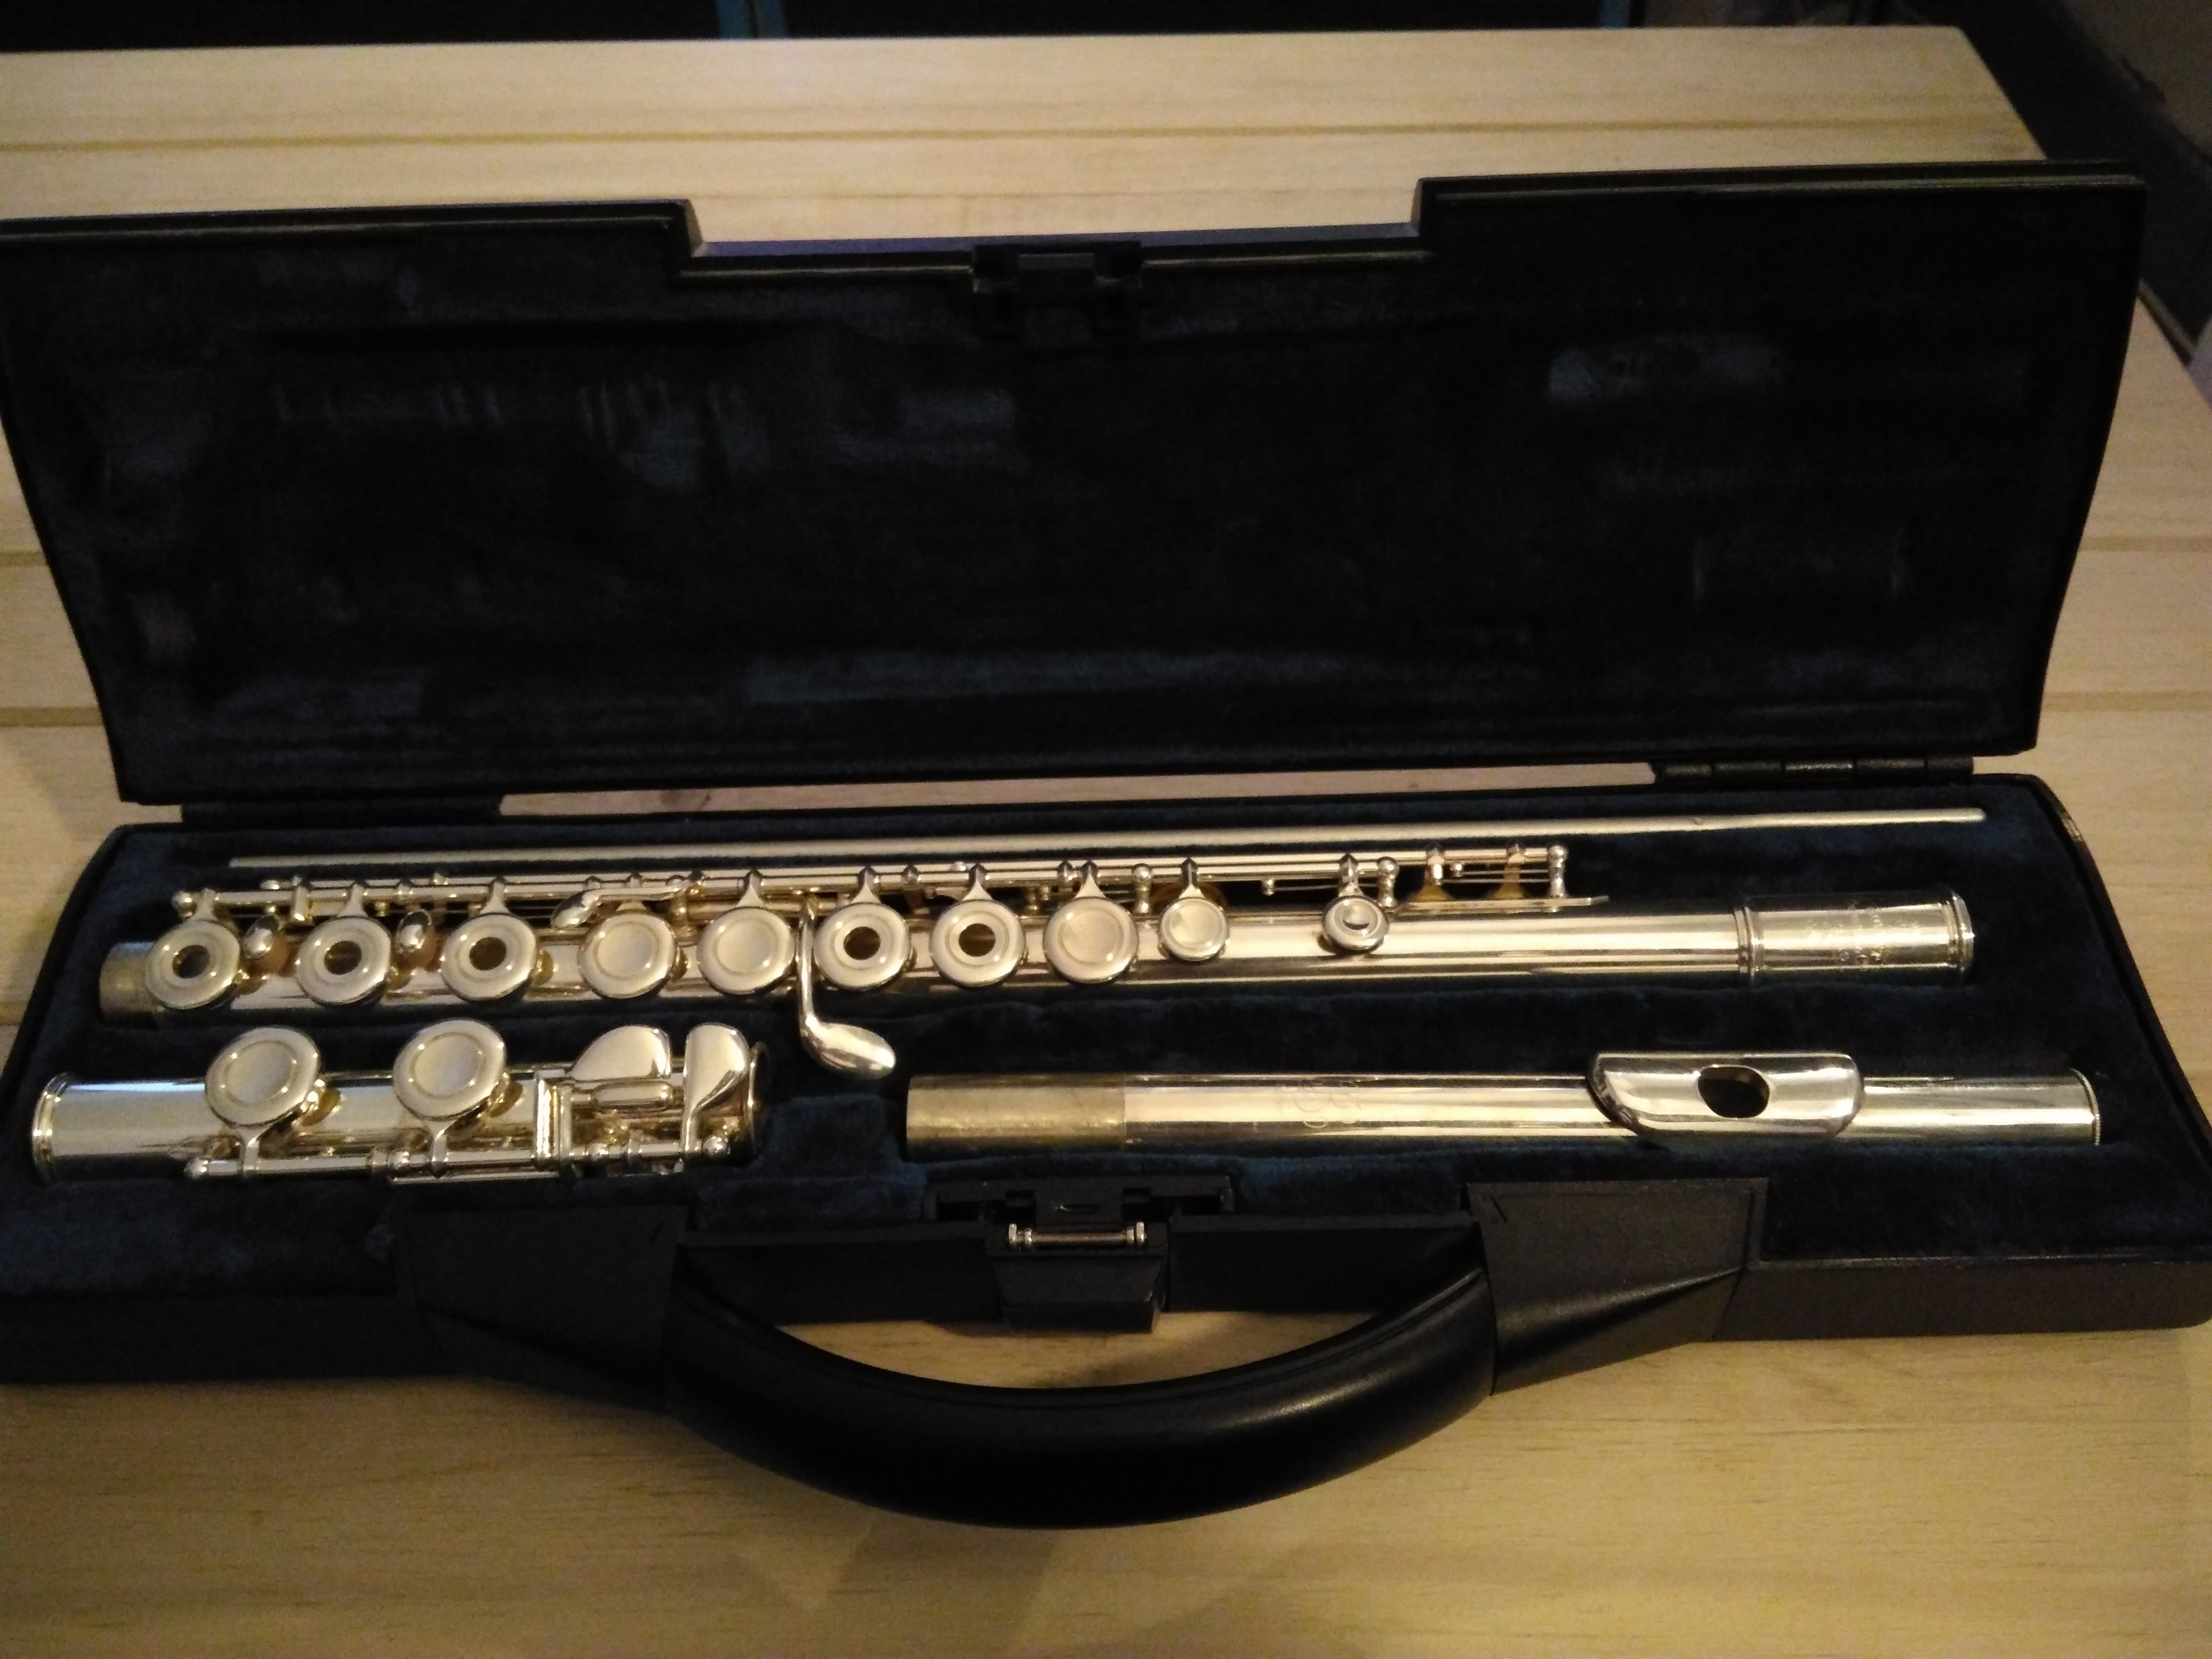 Buffet crampon fl te traversi re image 1968471 for Housse flute traversiere